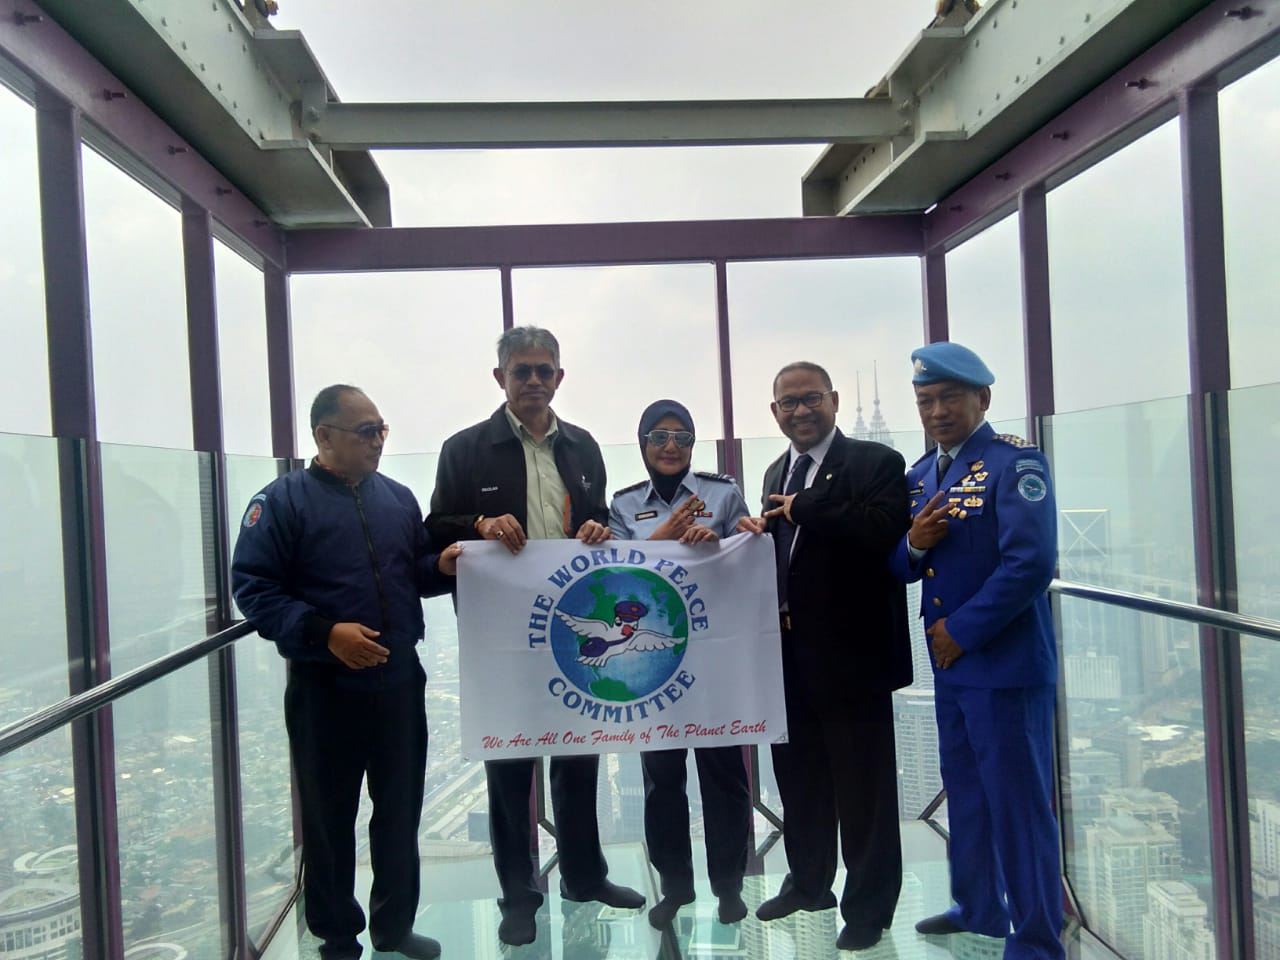 President of The World Mr Djuyoto Suntani places World Peace Gong at KL Tower Malaysia